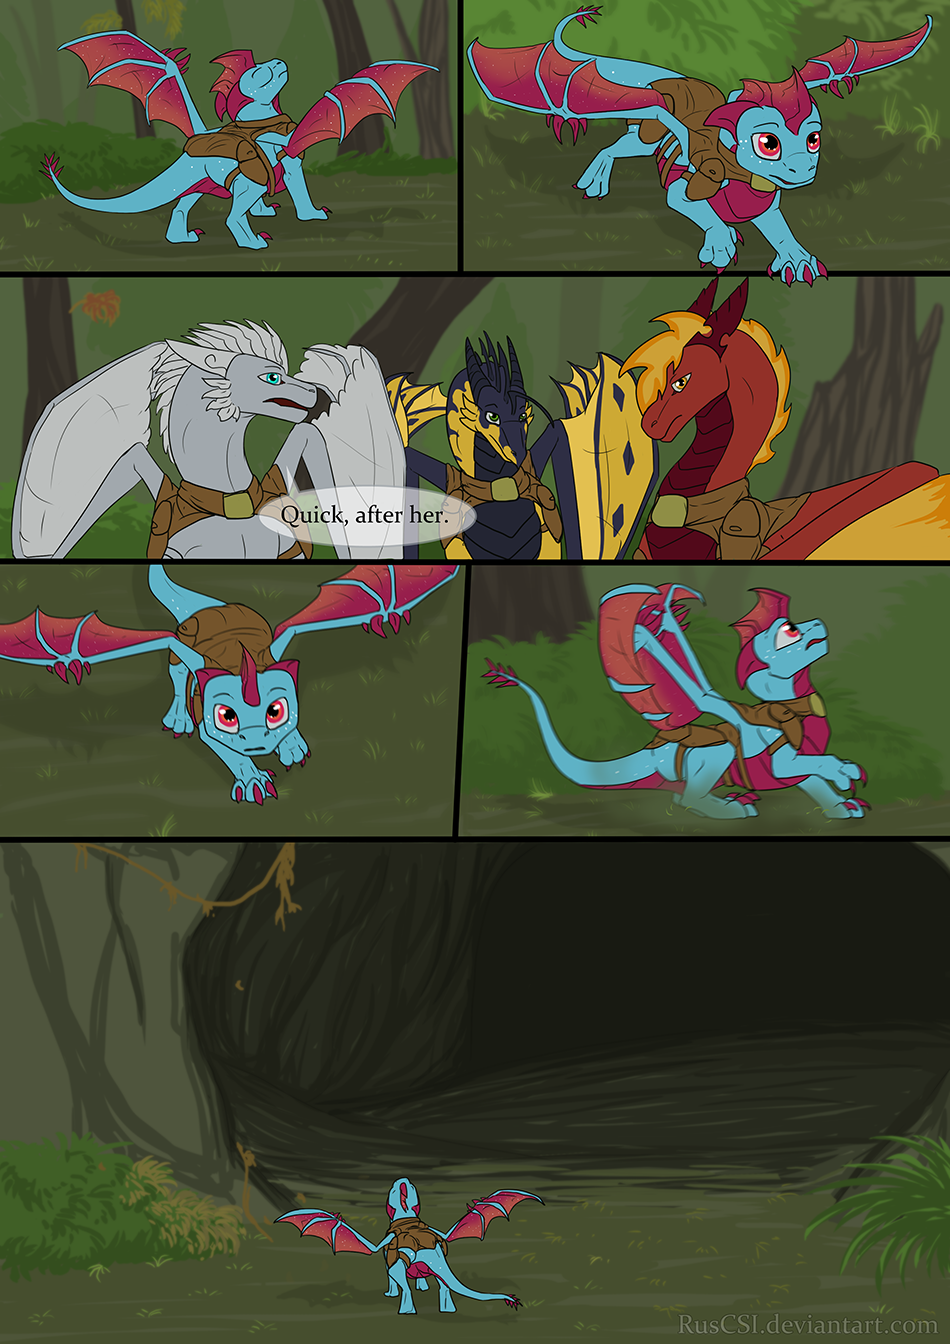 Courage of the cowardly dragon - page 30